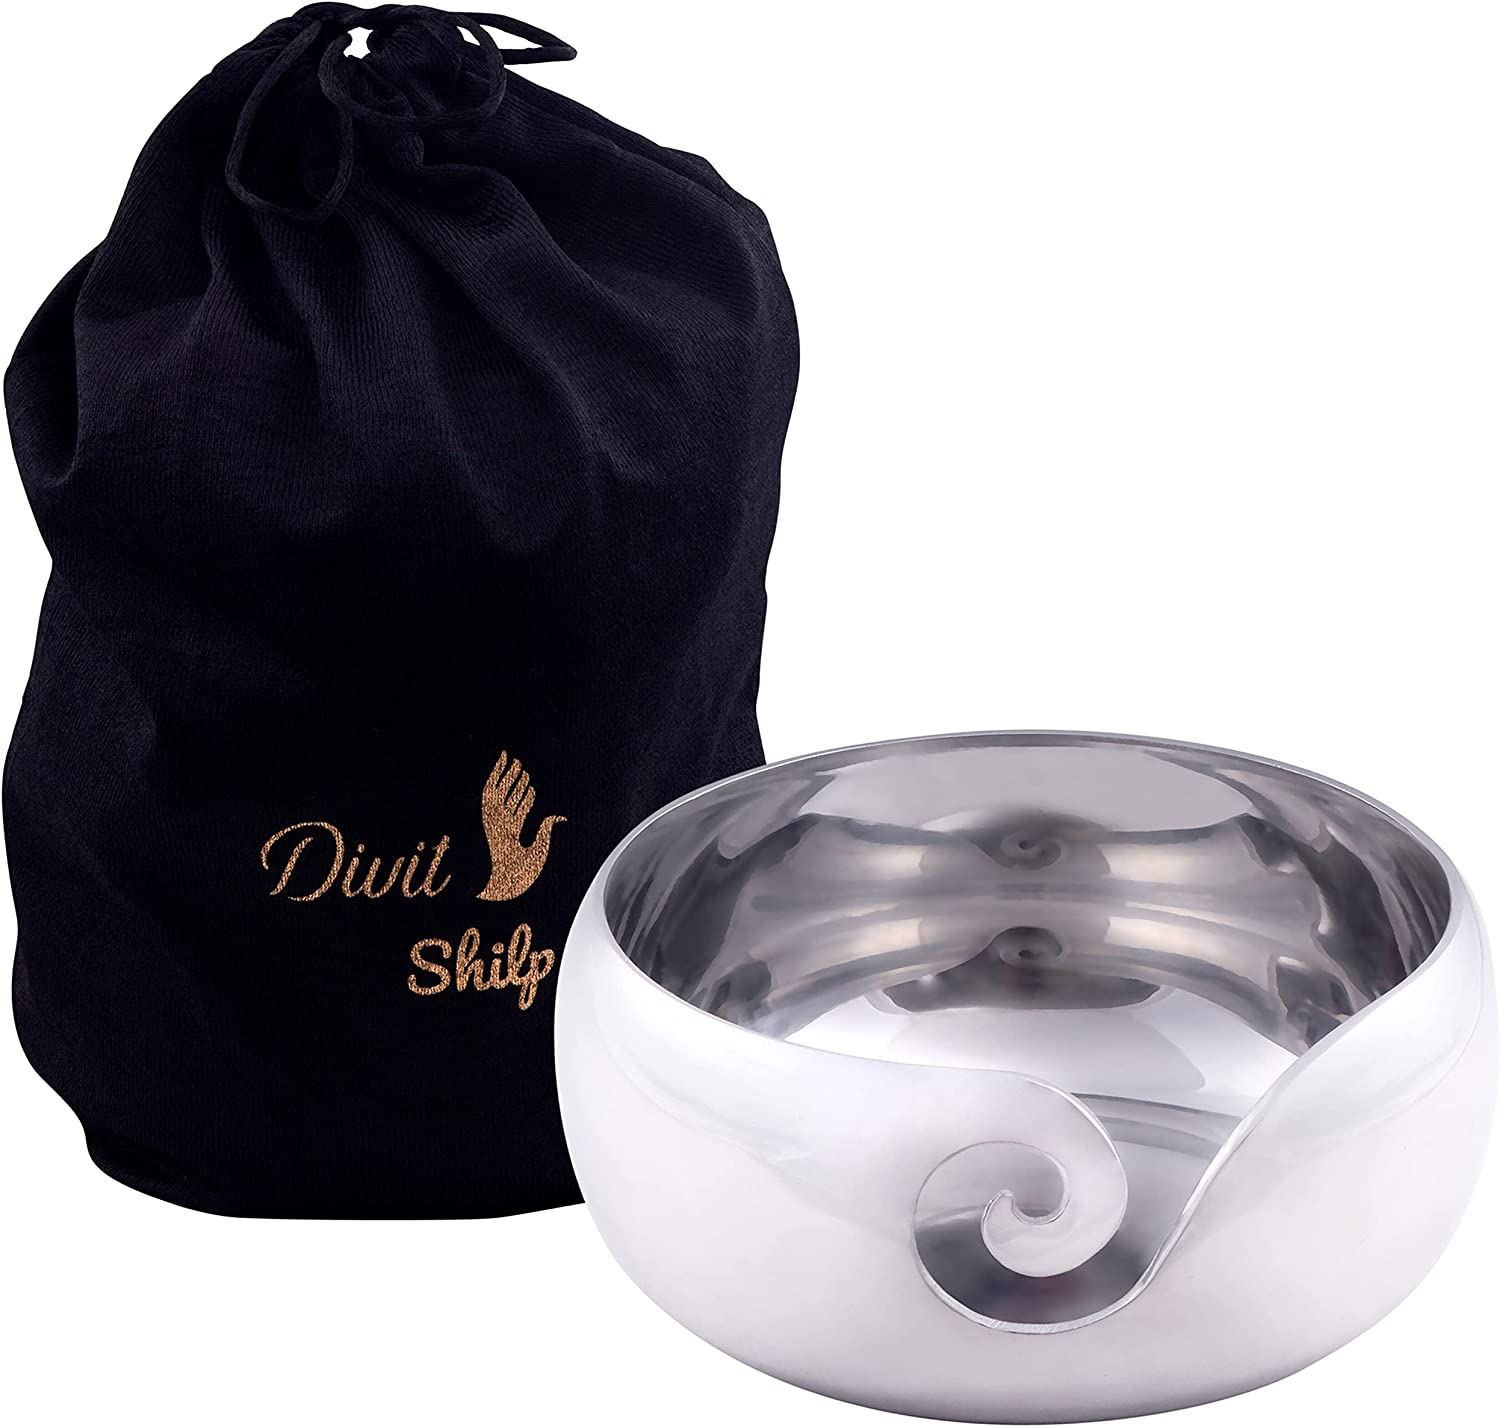 Divit Shilp Max New Shipping Free Shipping 49% OFF Handcrafted Metal Yarn Knitting Wool Storage B Bowl